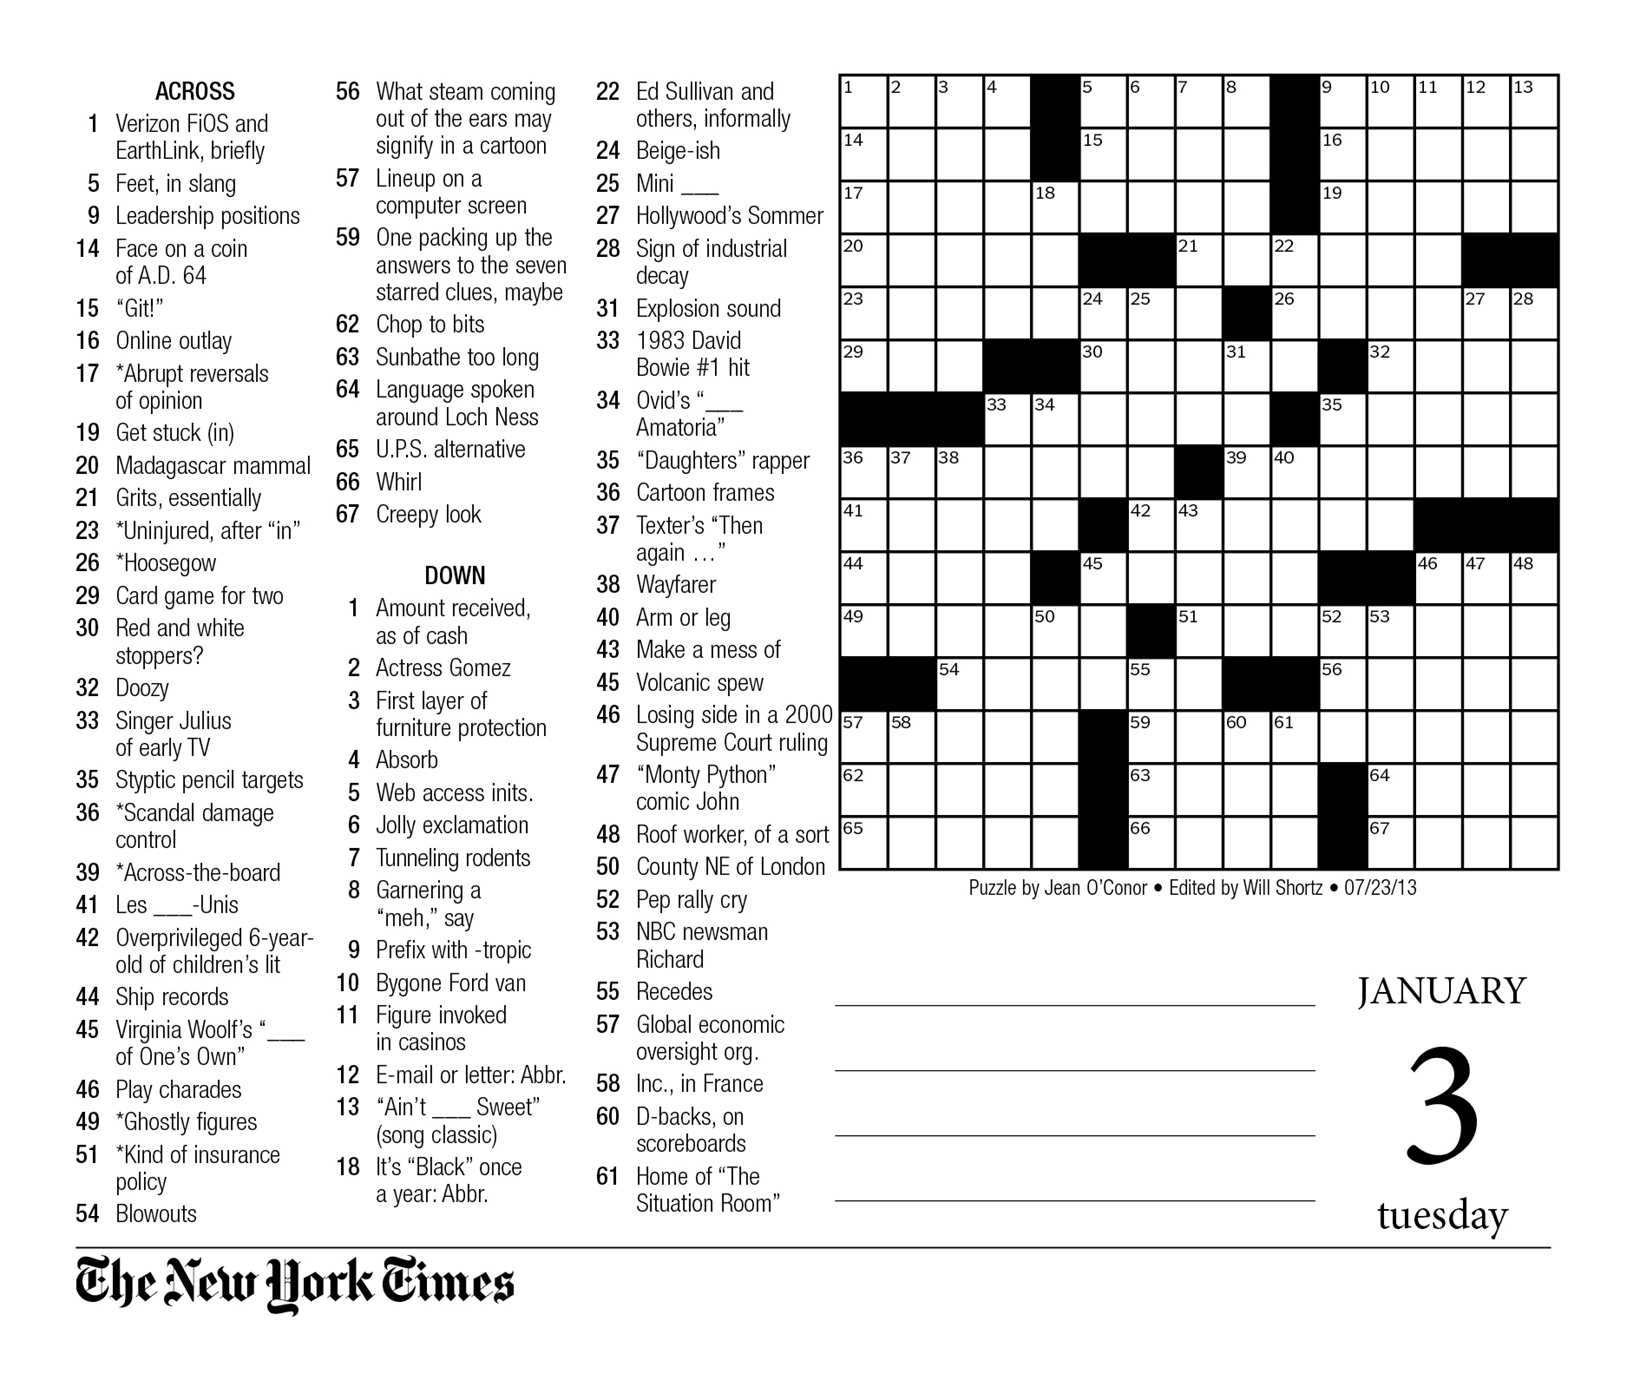 graphic relating to New York Times Crossword Printable Free Sunday called The Clean York Moments Crosswords 2017 Working day-in direction of-Working day Calendar: The